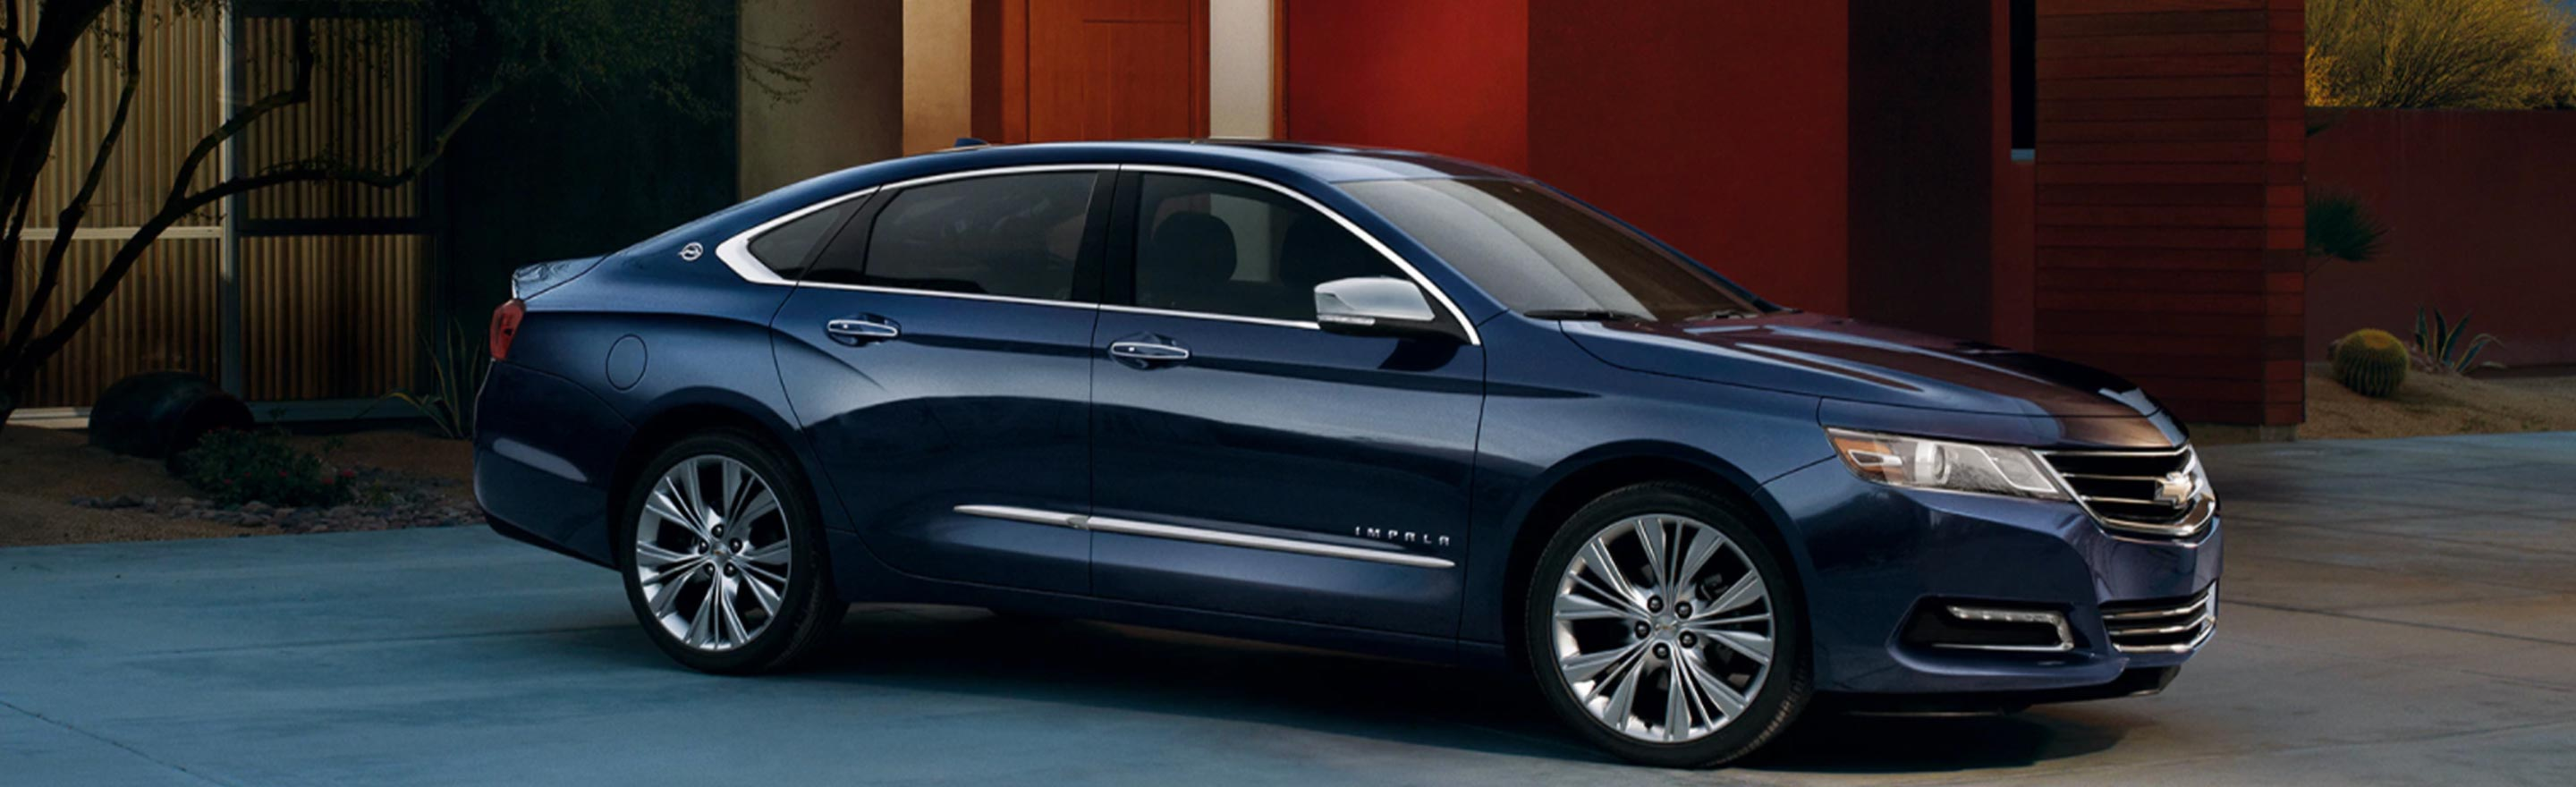 2020 Chevrolet Impala Sedan For Sale In Owasso, Oklahoma